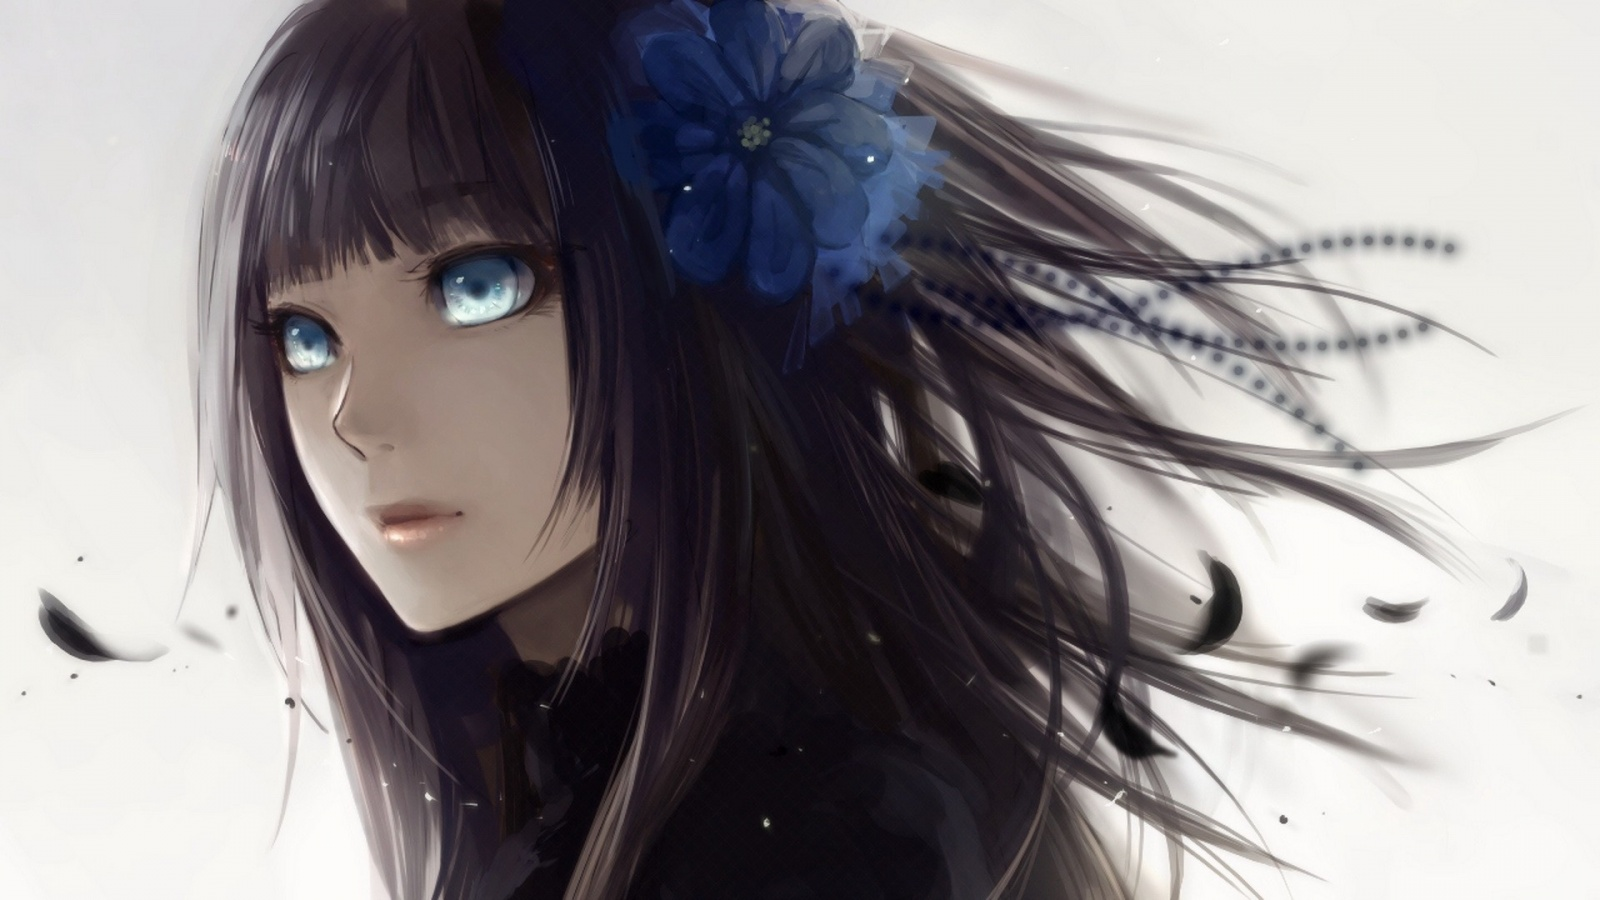 Anime Girl With Black Hair And Blue Eyes